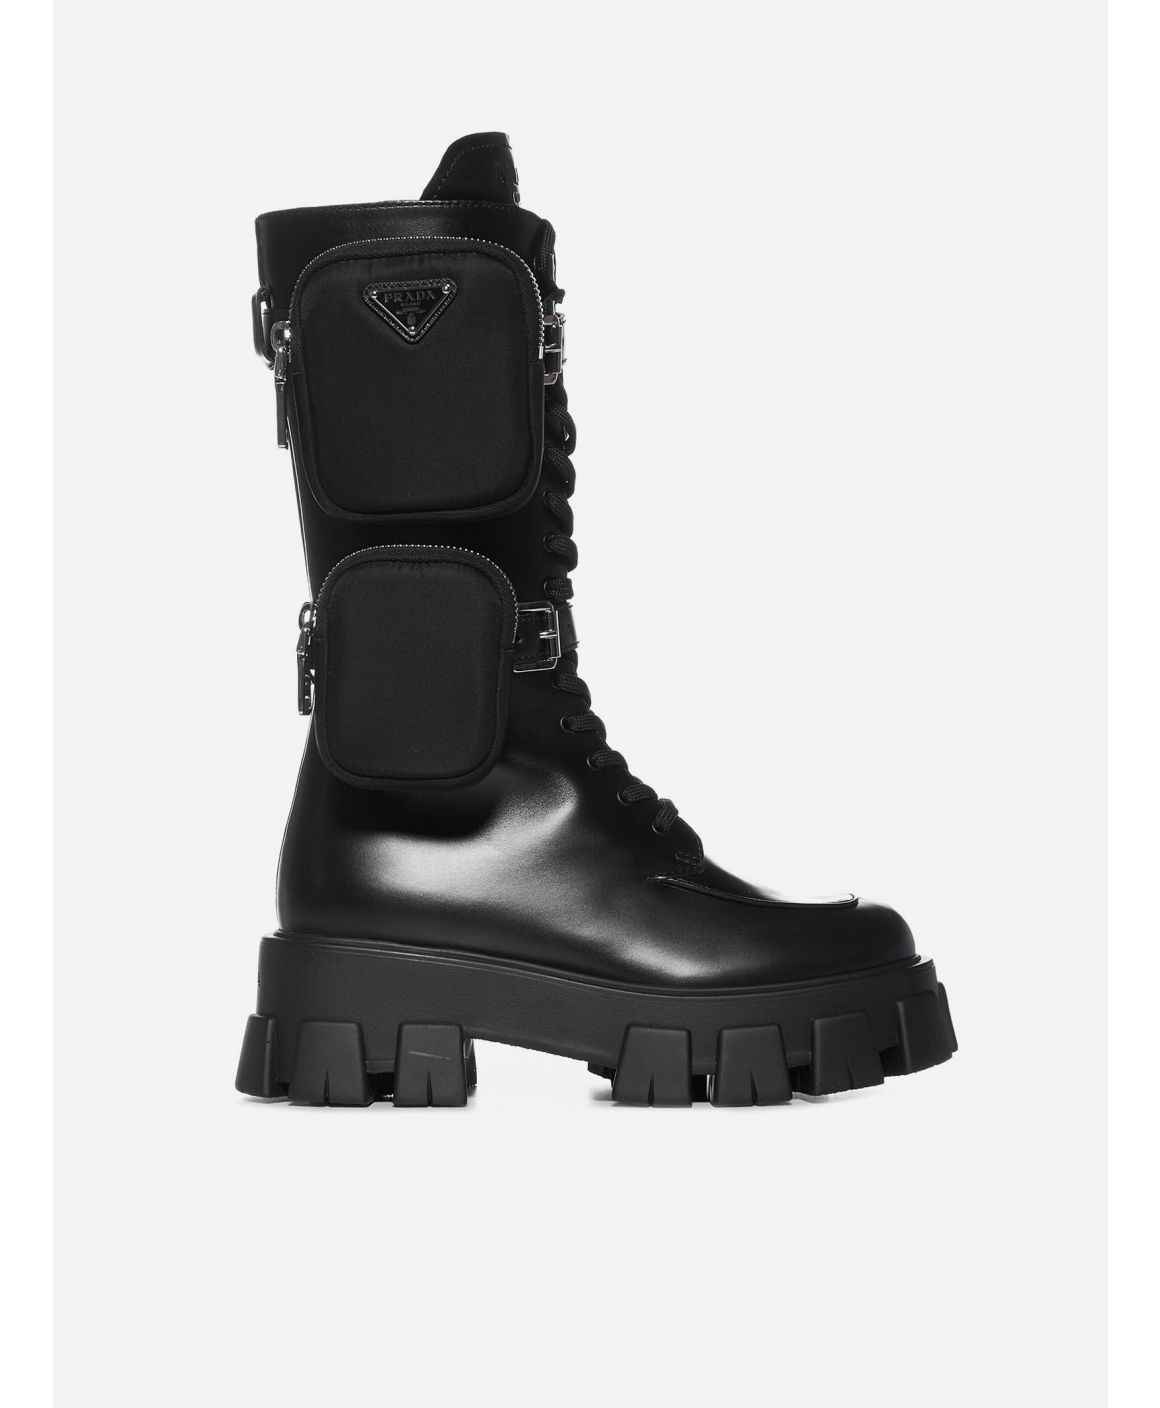 Monolith leather combat boots